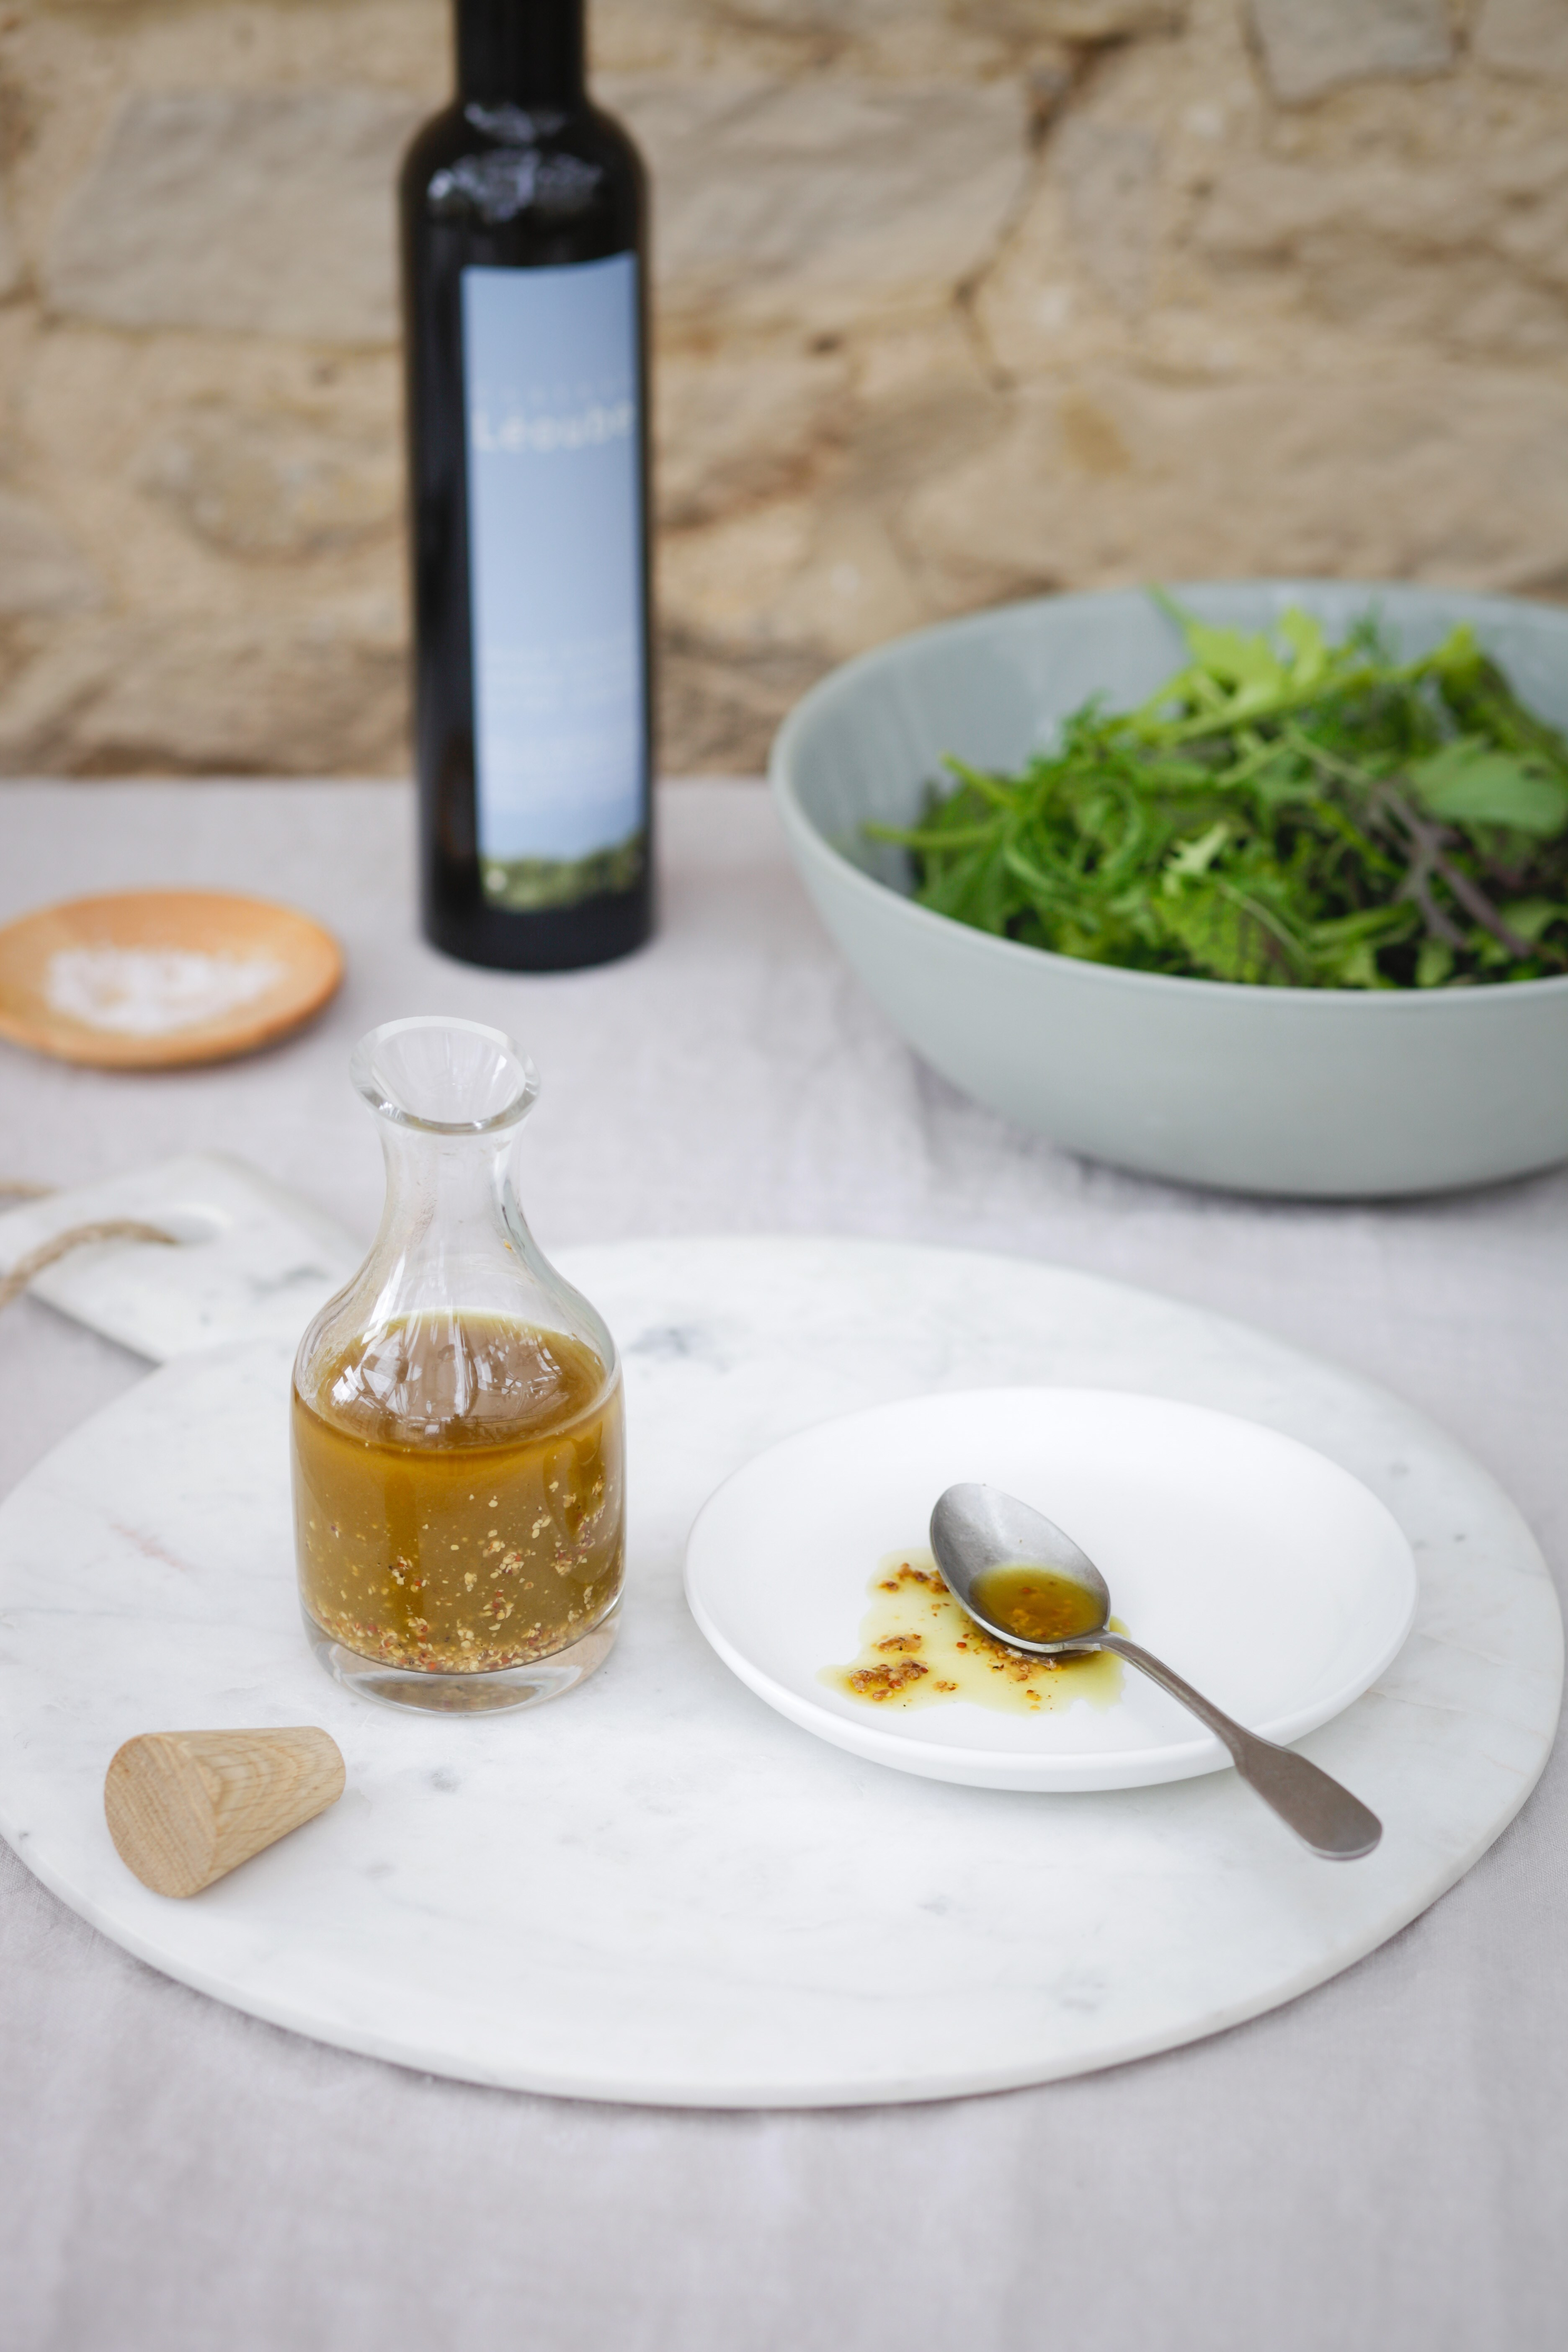 Simple Salad Dressing With Honey & Apple Cider Vinegar